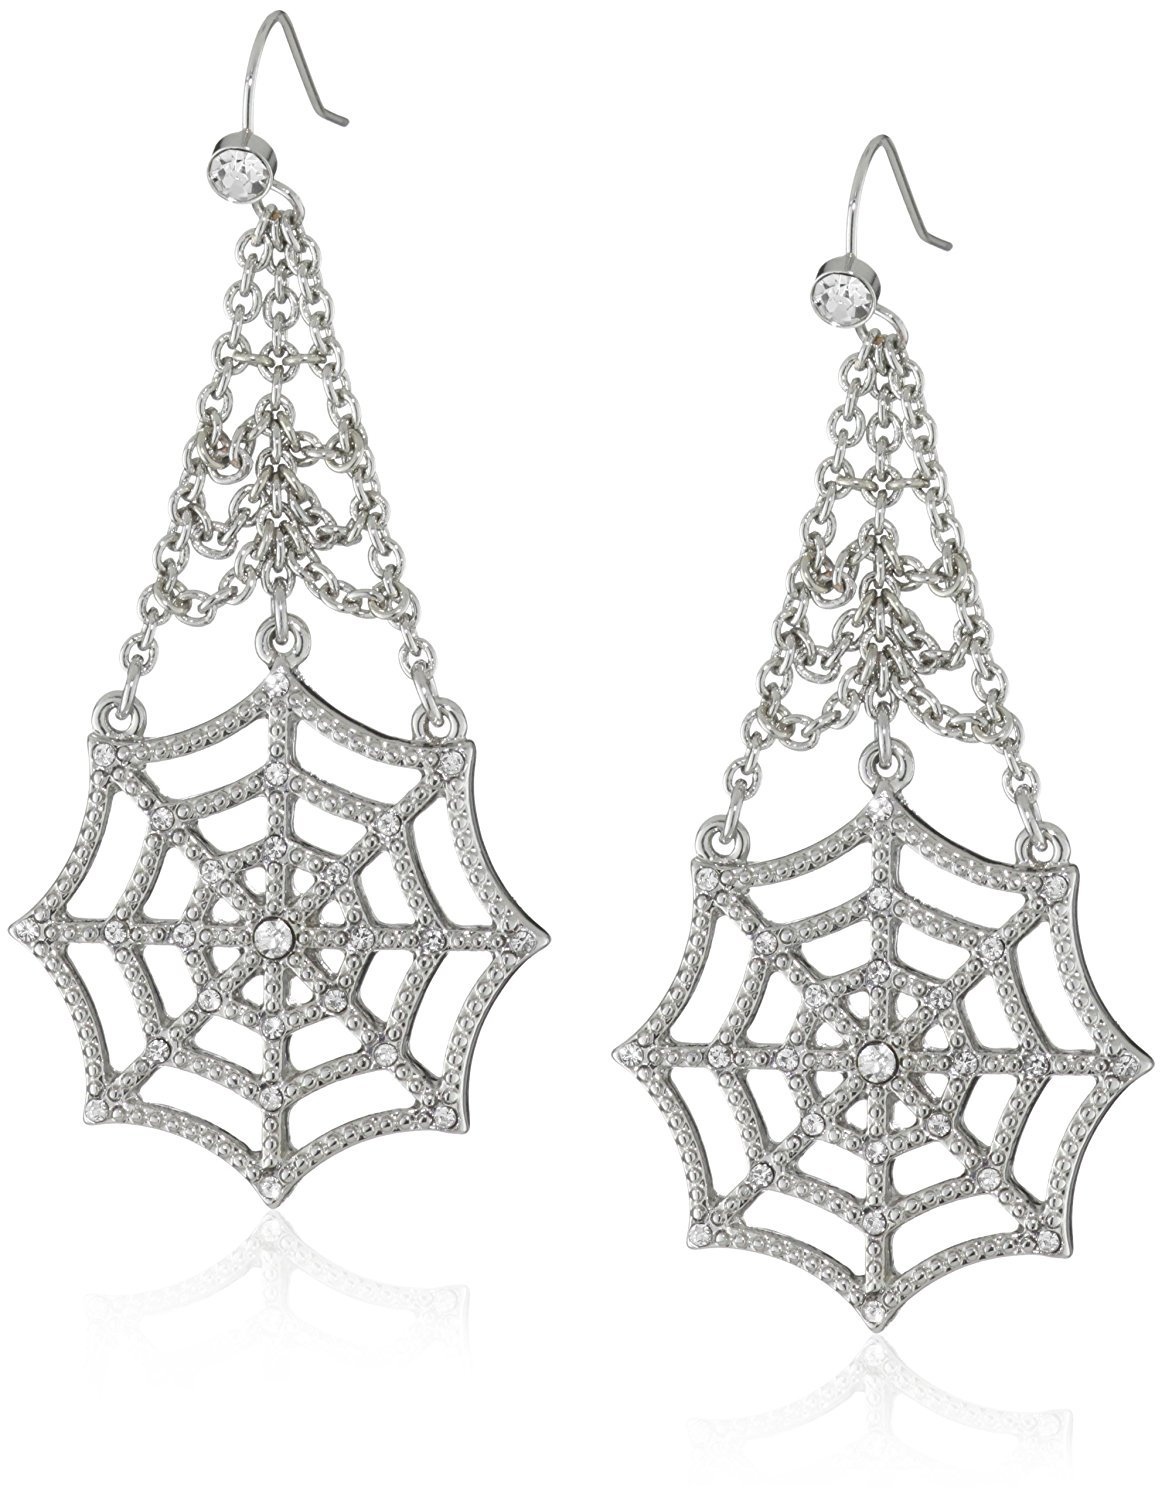 Marvel Comics Spider-Man Web Crystal Dangle Earrings Licensed by MARVEL + Comic Con Exclusive